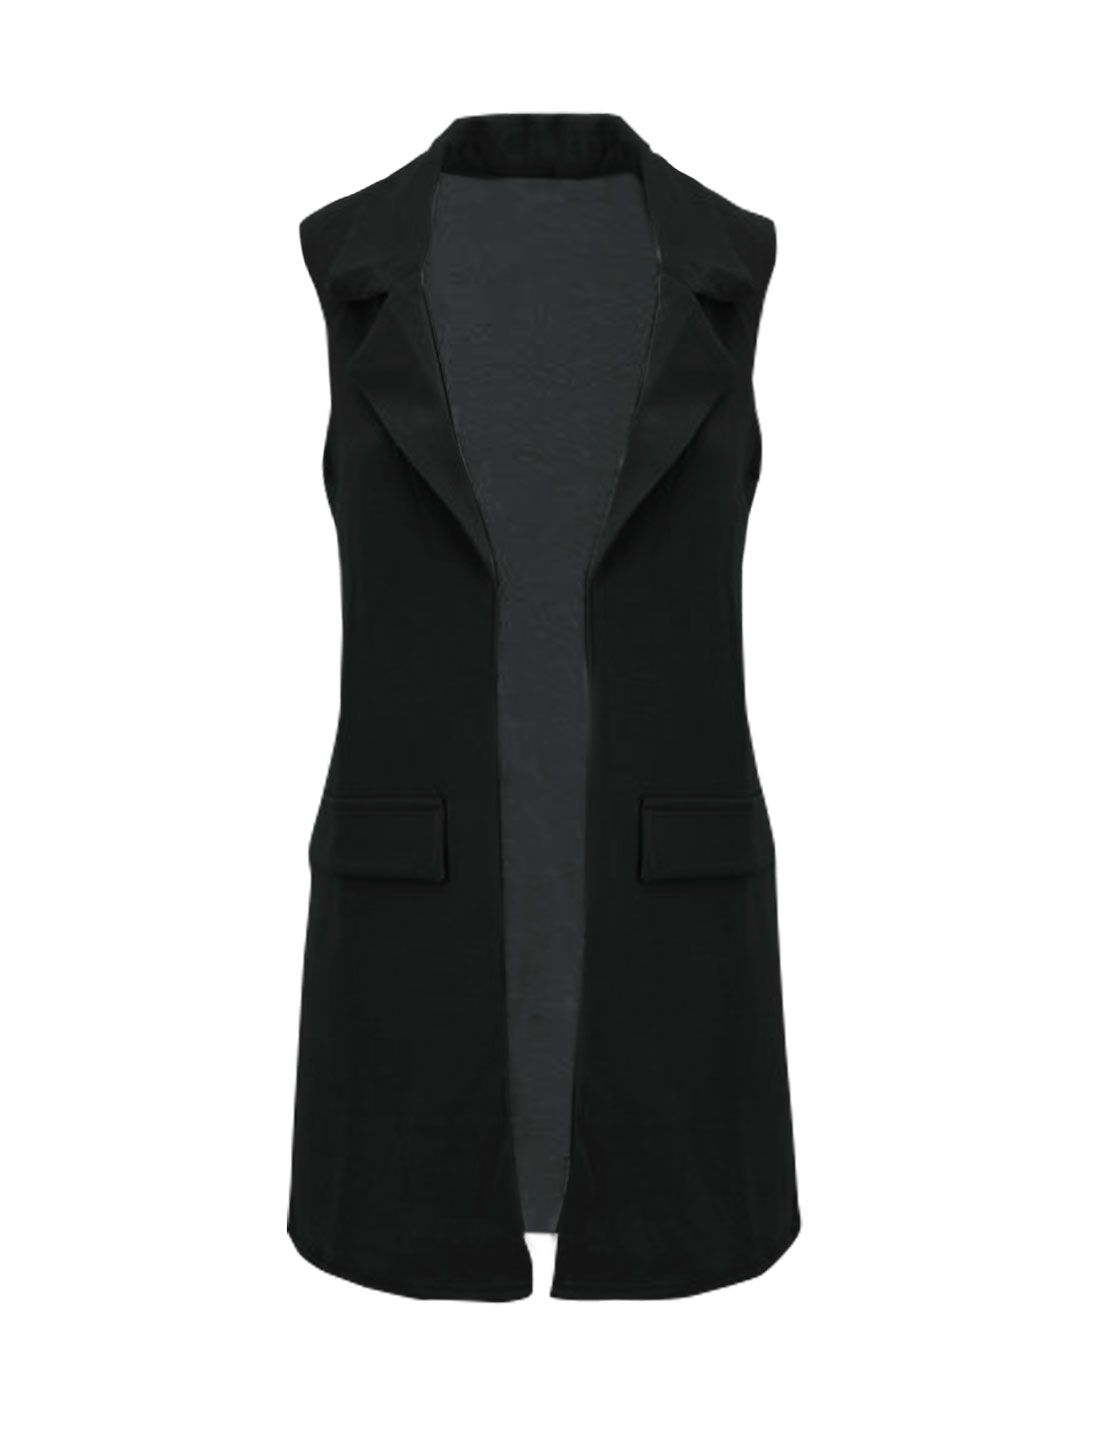 Women Turn Down Collar Mock Pockets Open Front Tunic Vest Black S